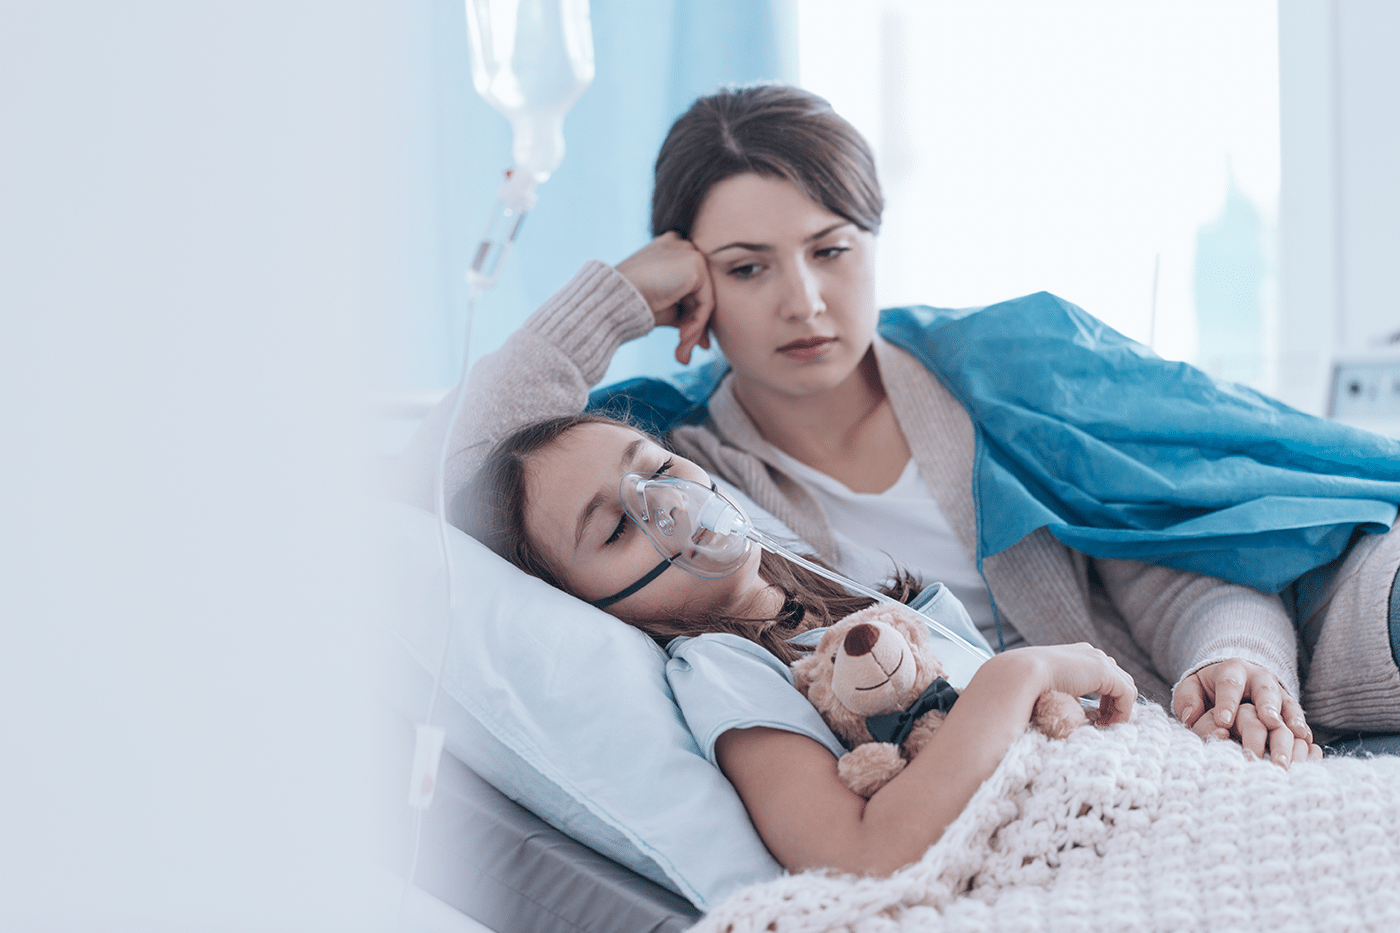 Child in hospital bed with mask on